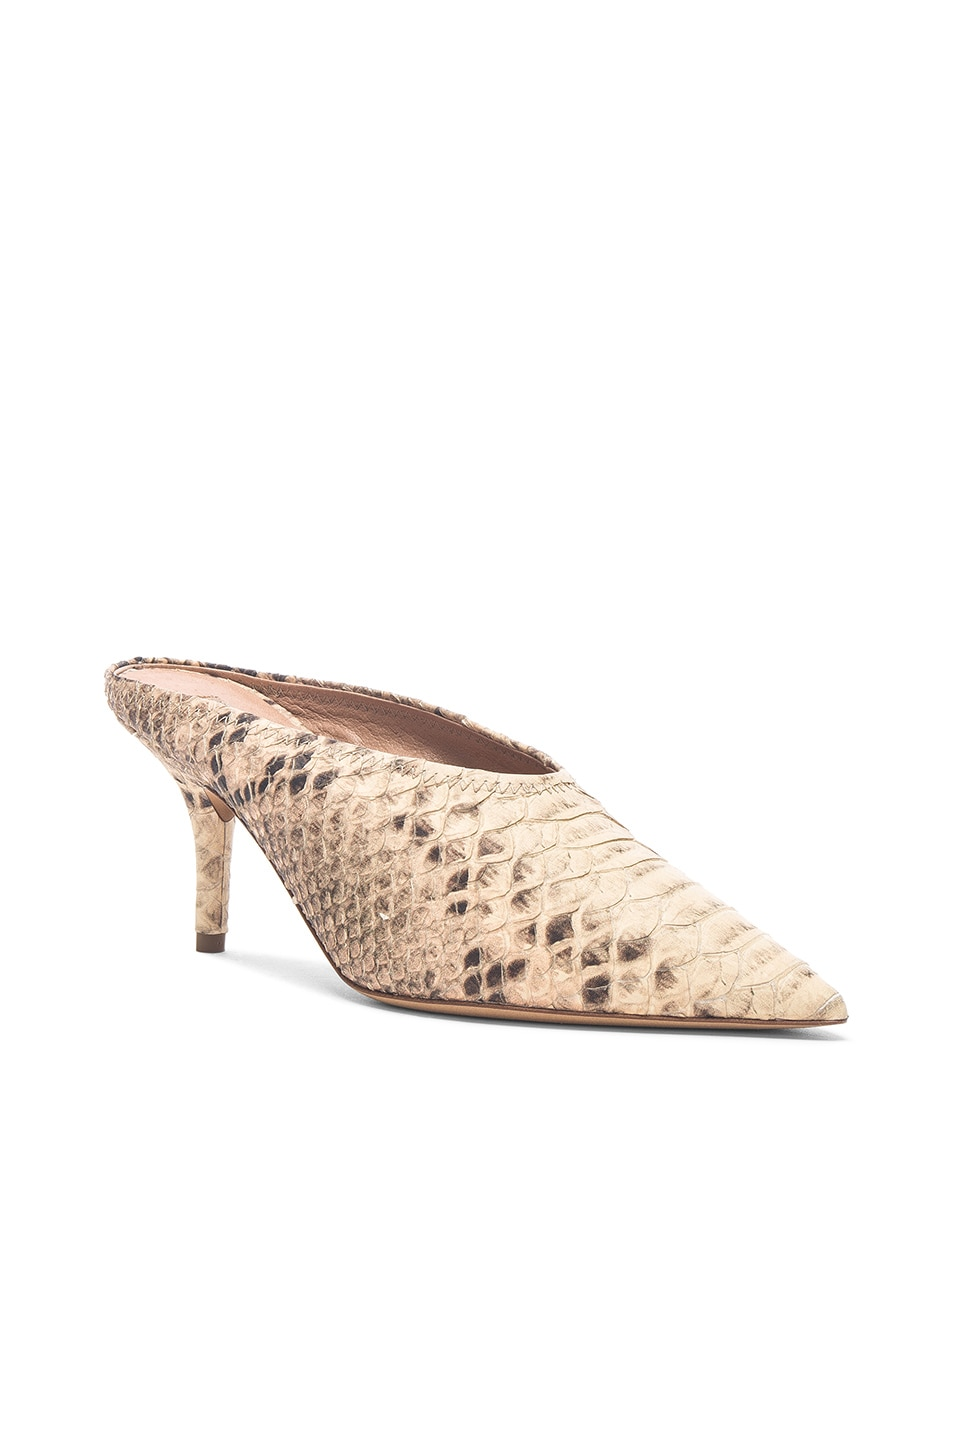 Image 2 of YEEZY Season 6 Faux Python Embossed Leather Mule Pumps in Roccia Mesa